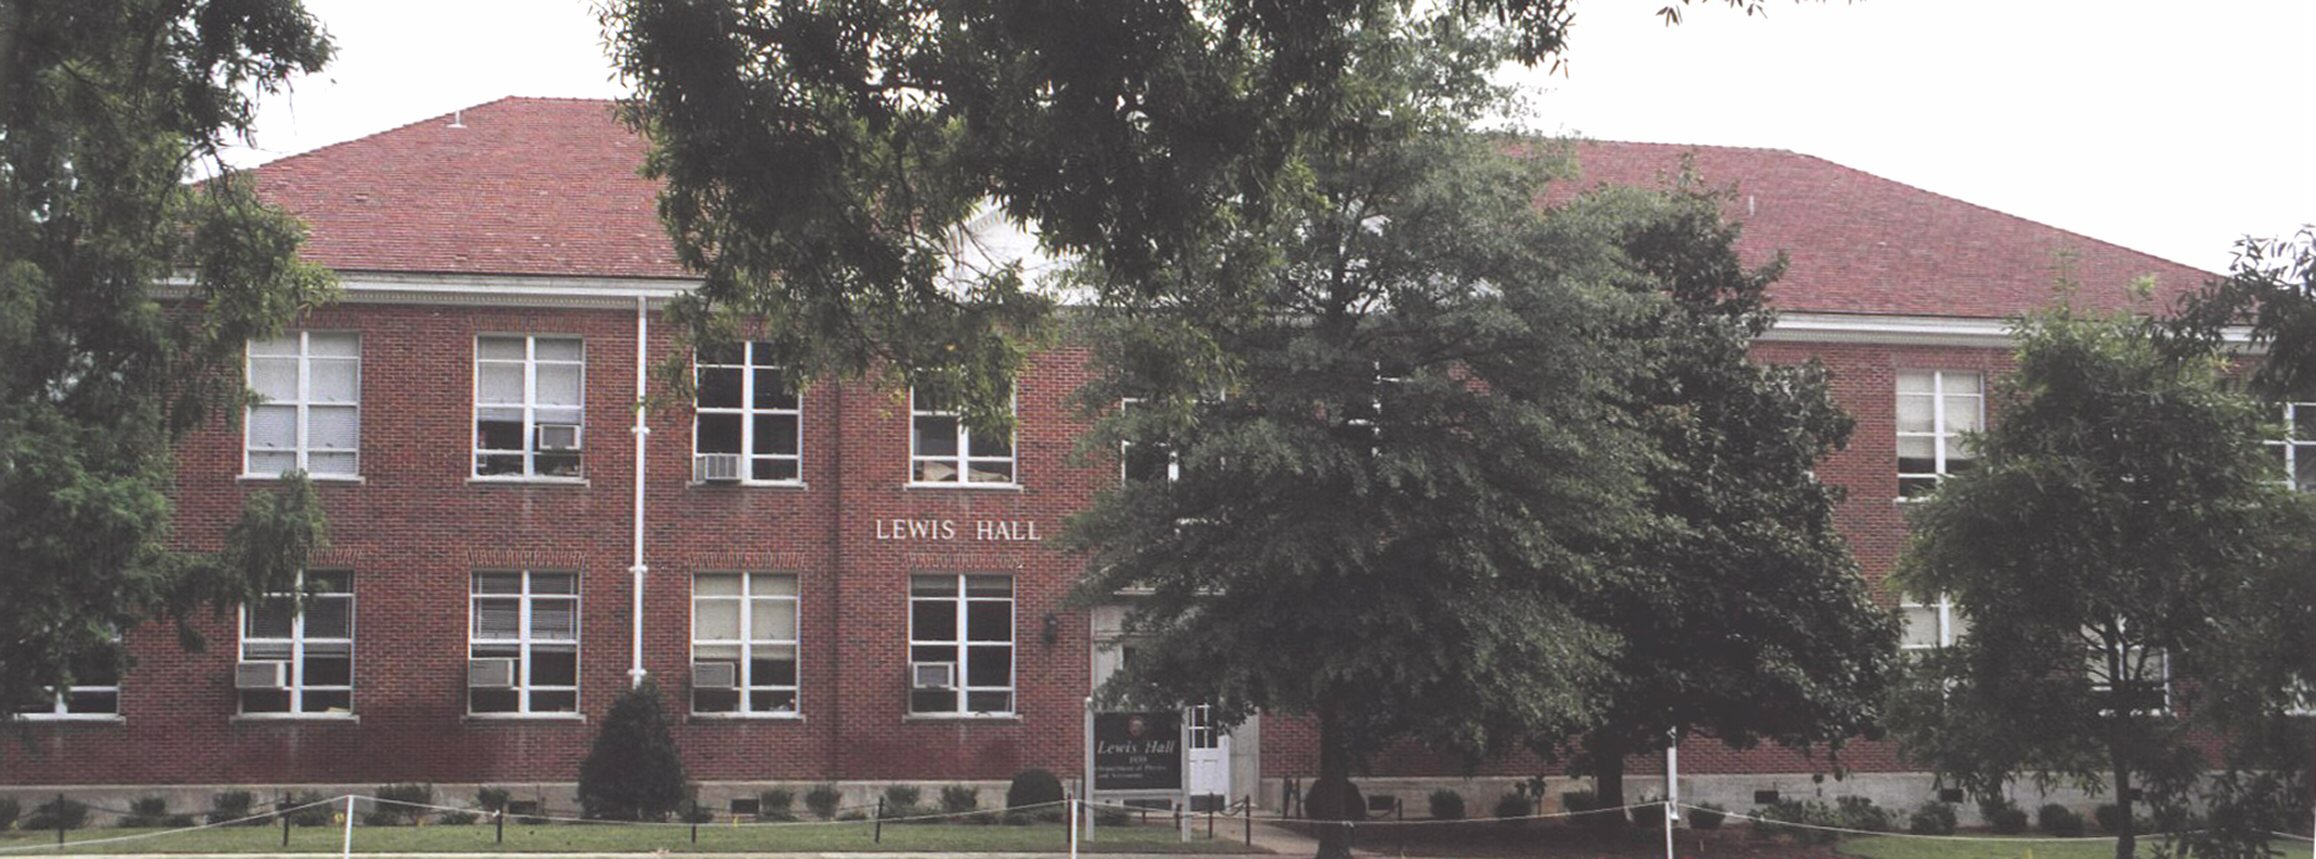 Lewis Hall, north side